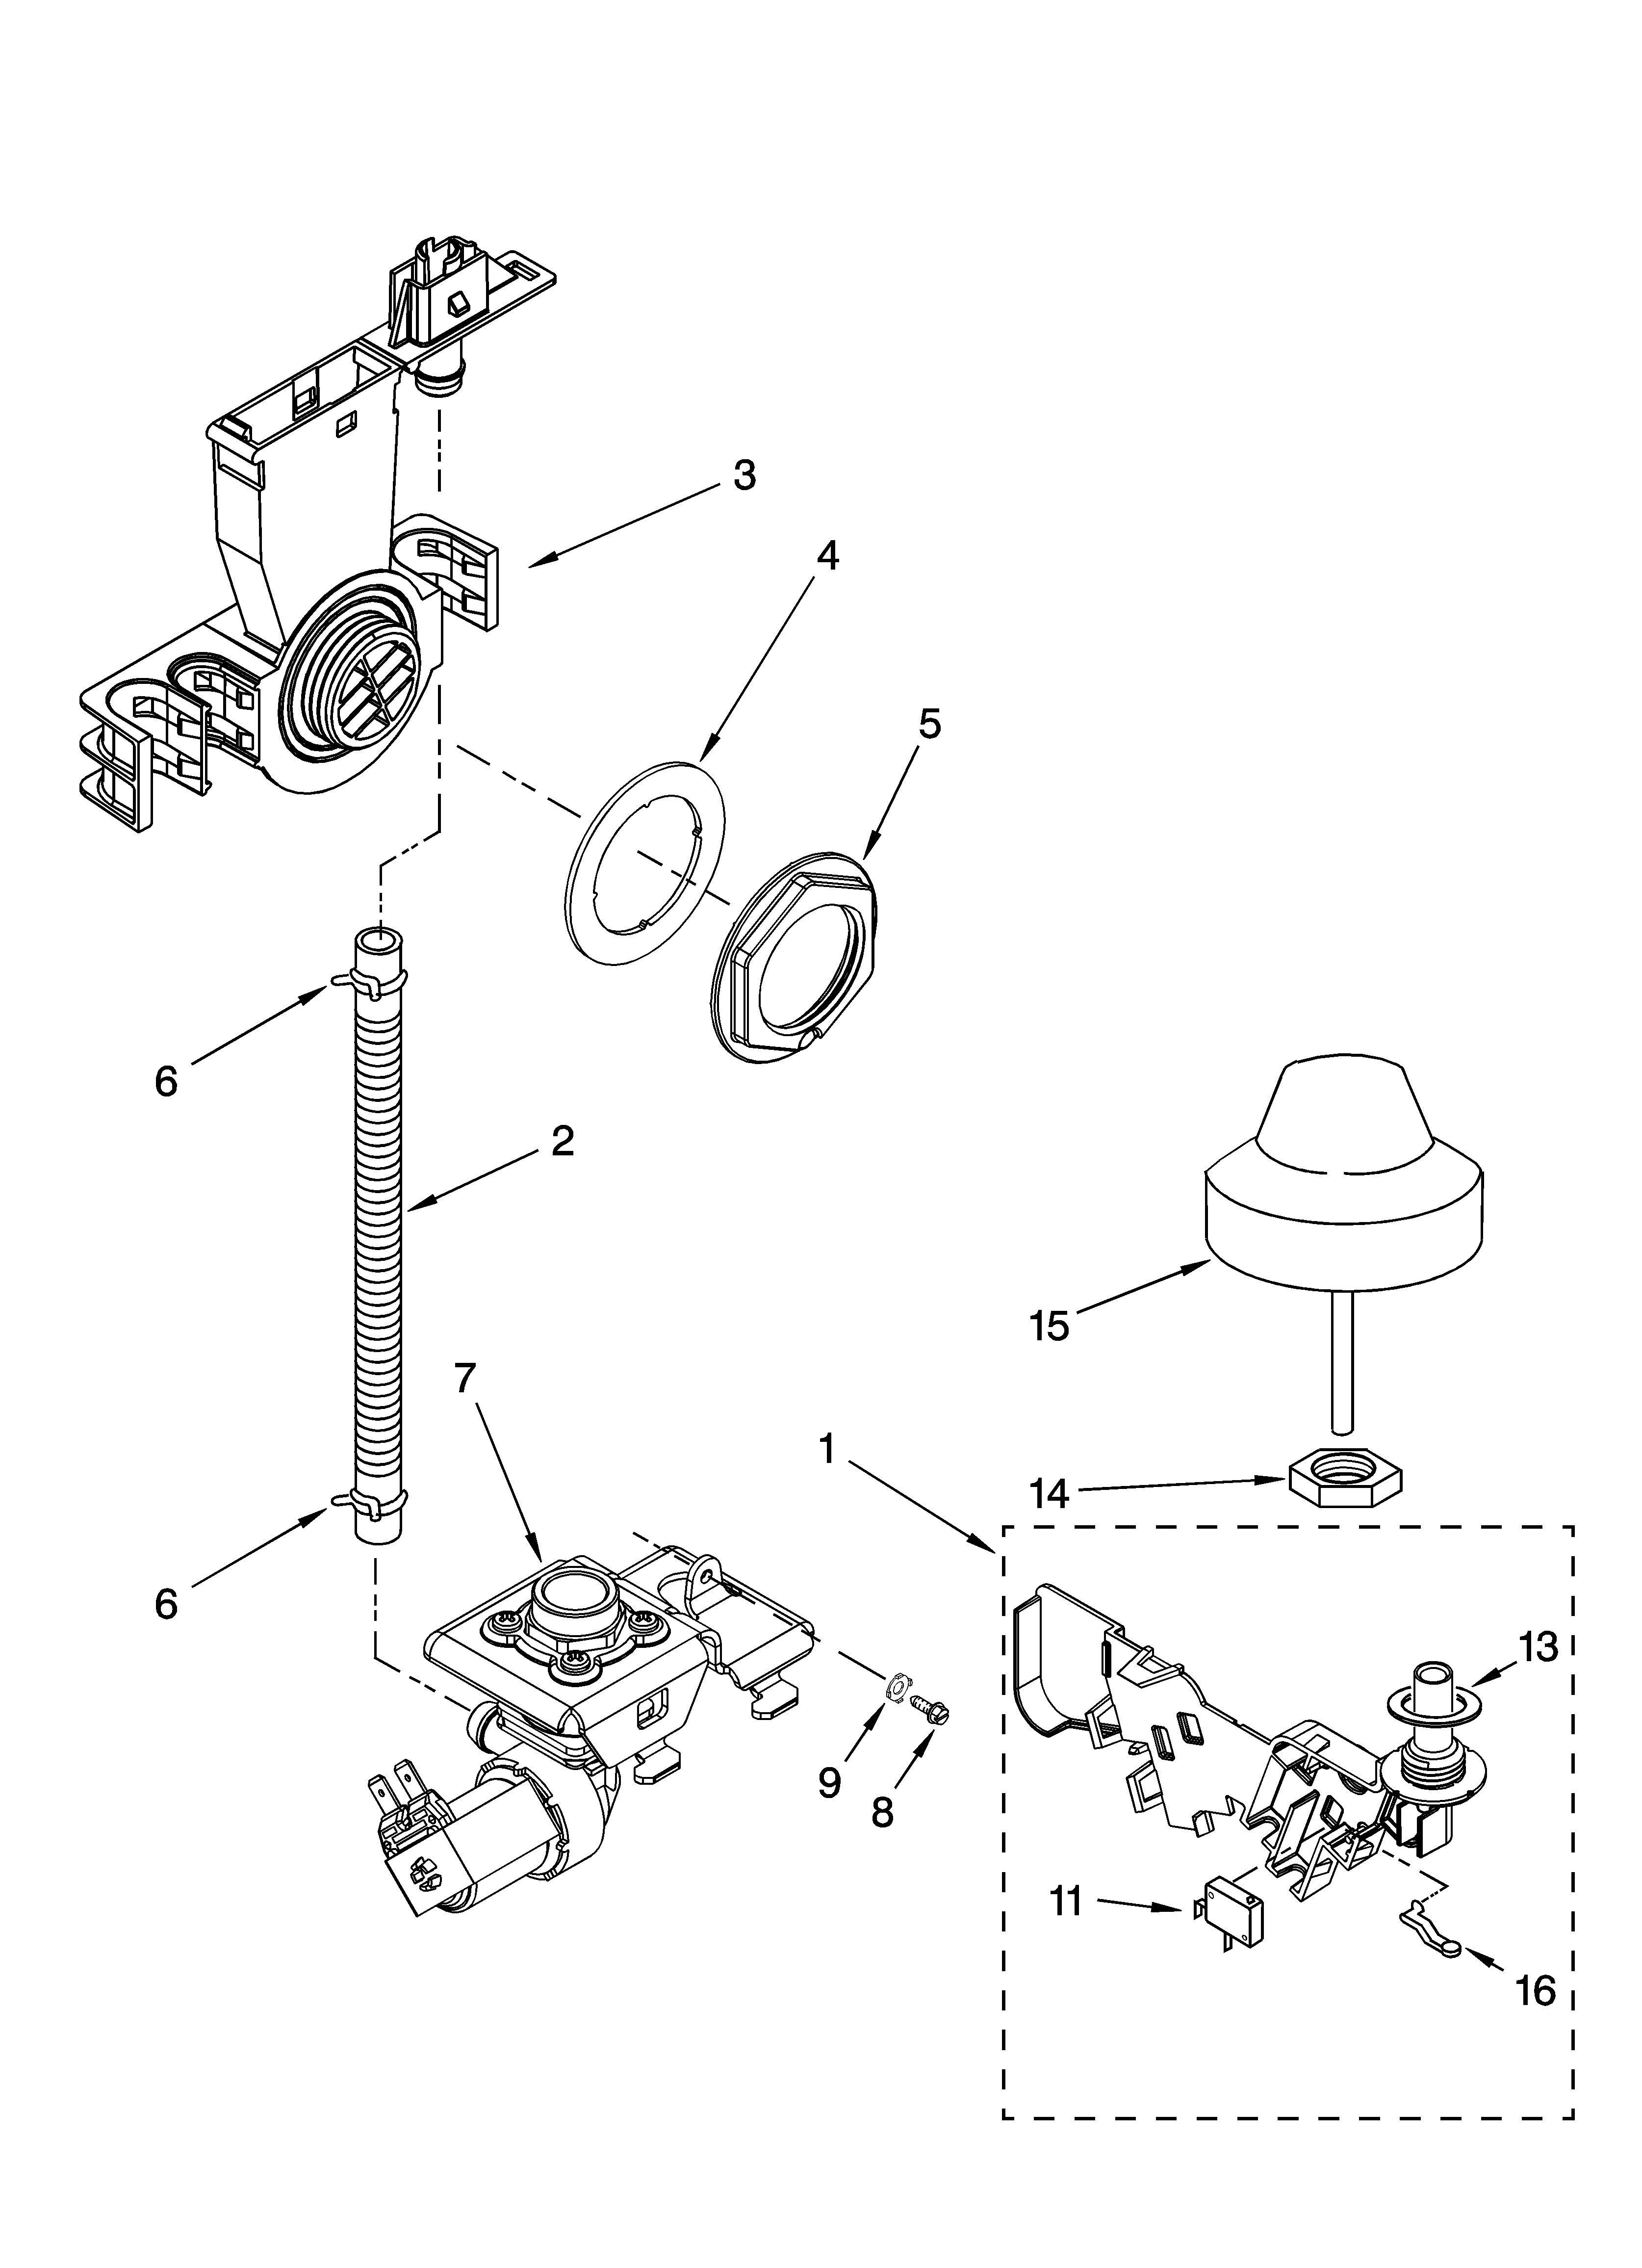 KitchenAid KUDK01ILBS3 fill and overfill parts diagram